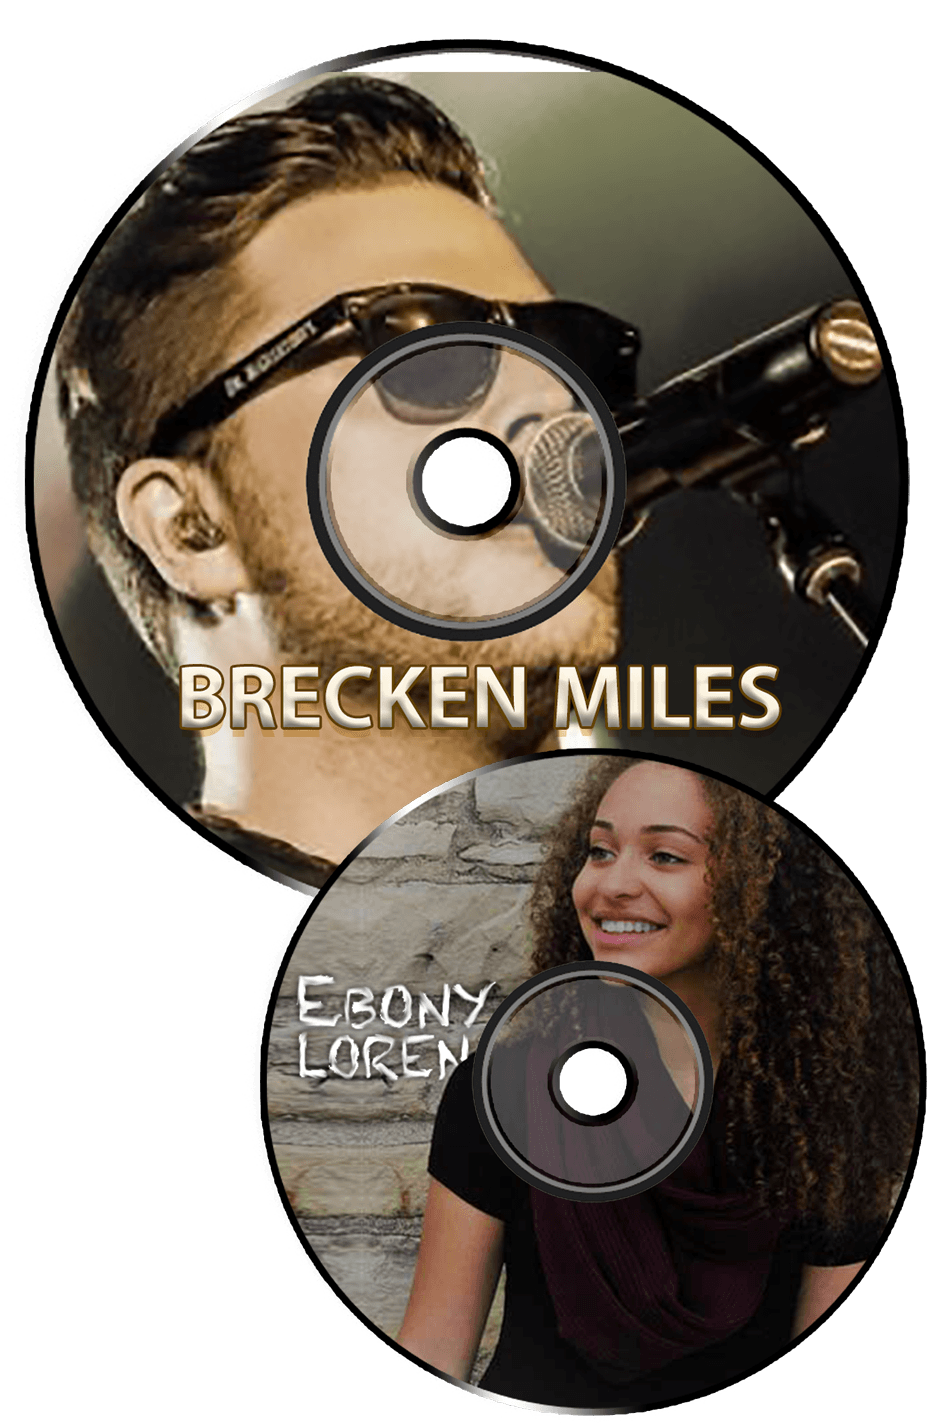 Brecken Miles and Ebony Loren